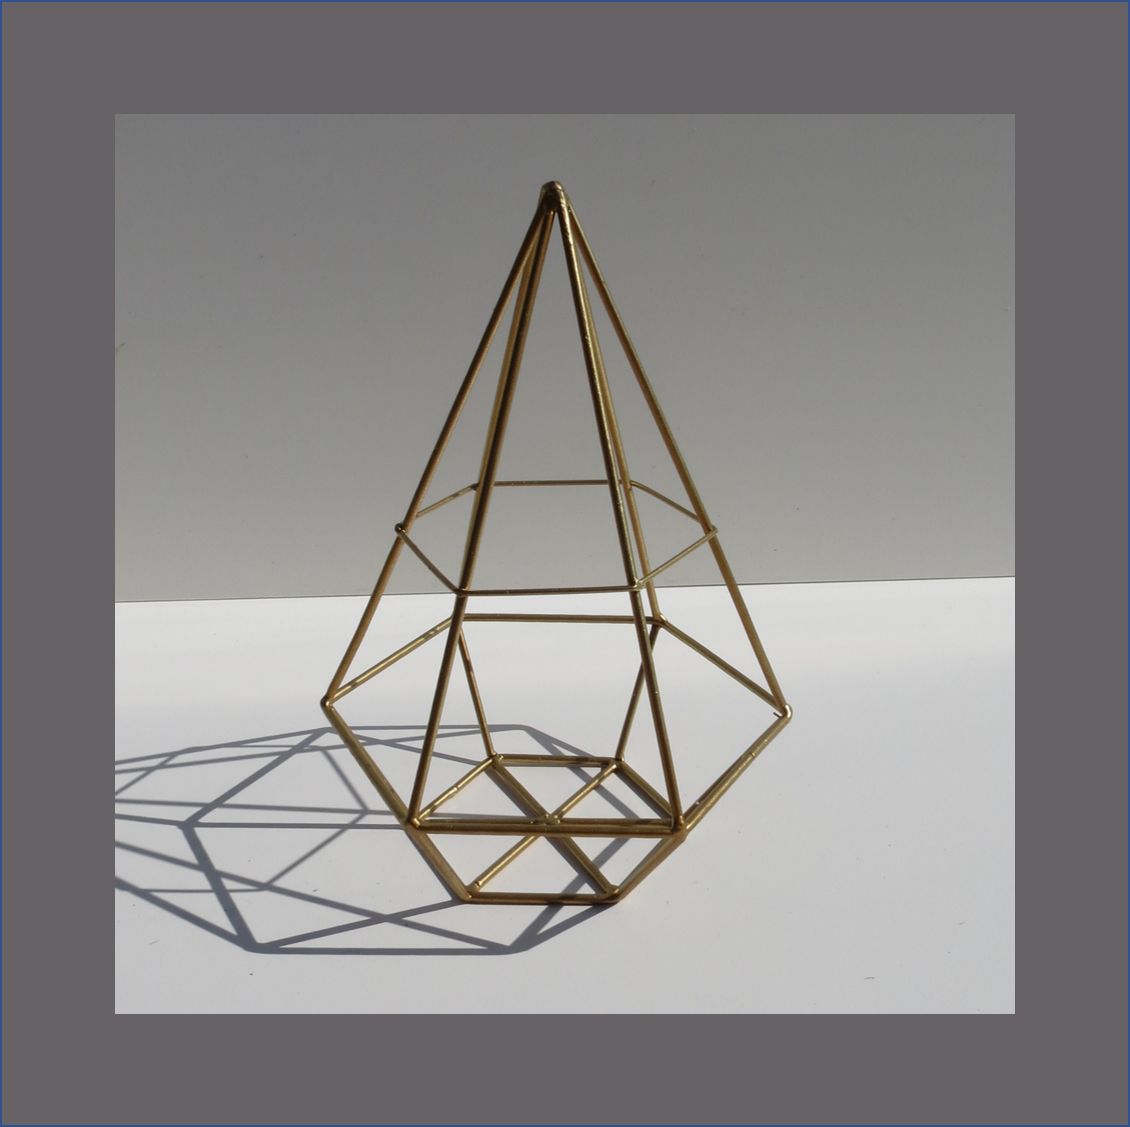 gold-geometrical-candle-holder